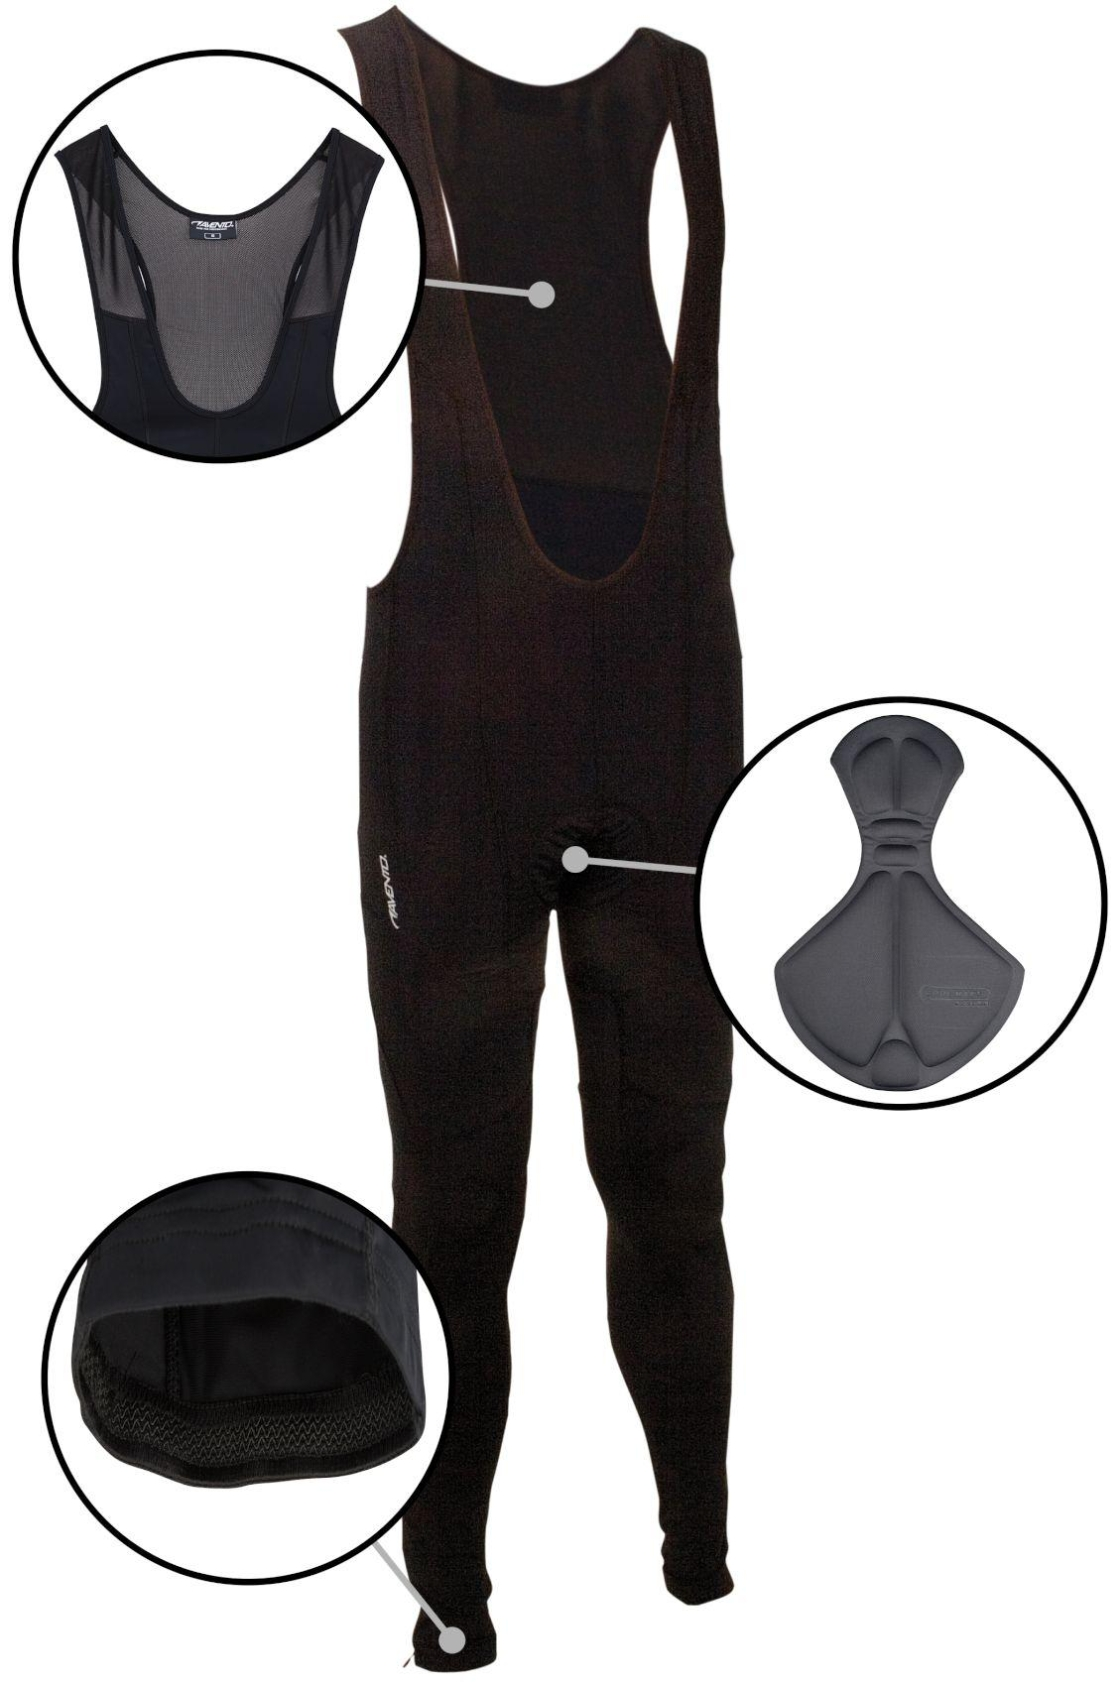 Men's Cycling Bib Trousers Avento - ON24 SPORT